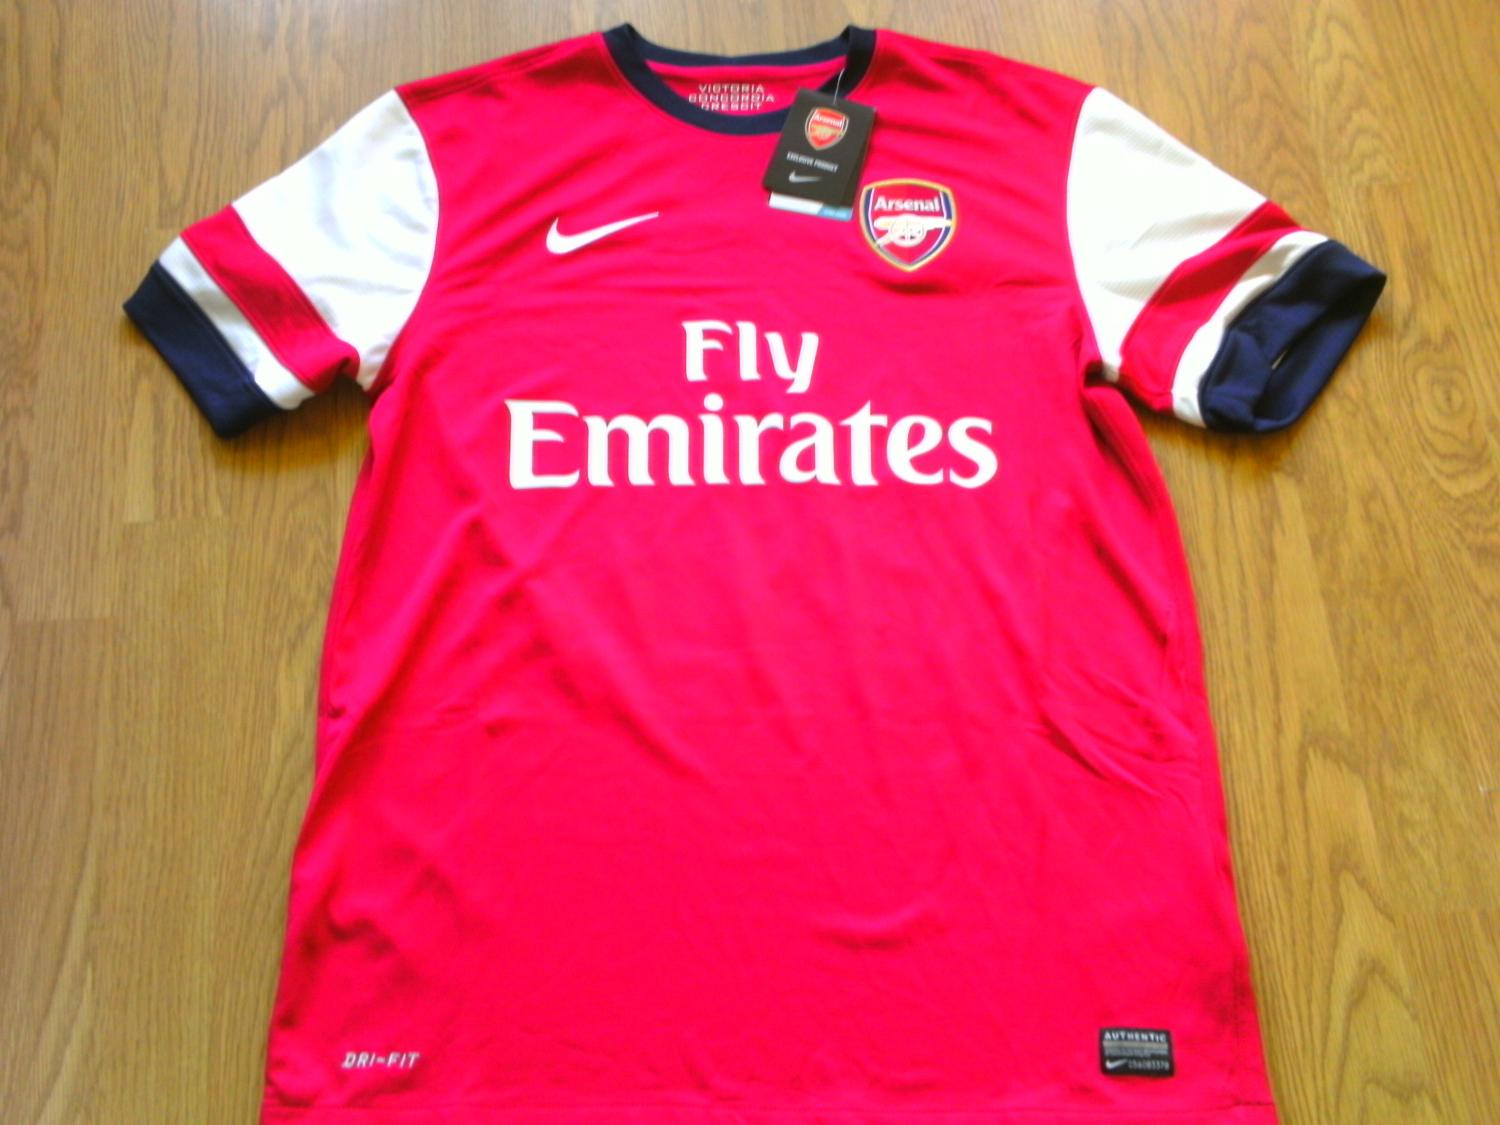 sale retailer 7408c 9aba4 Arsenal Home football shirt 2012 - 2014. Sponsored by Emirates